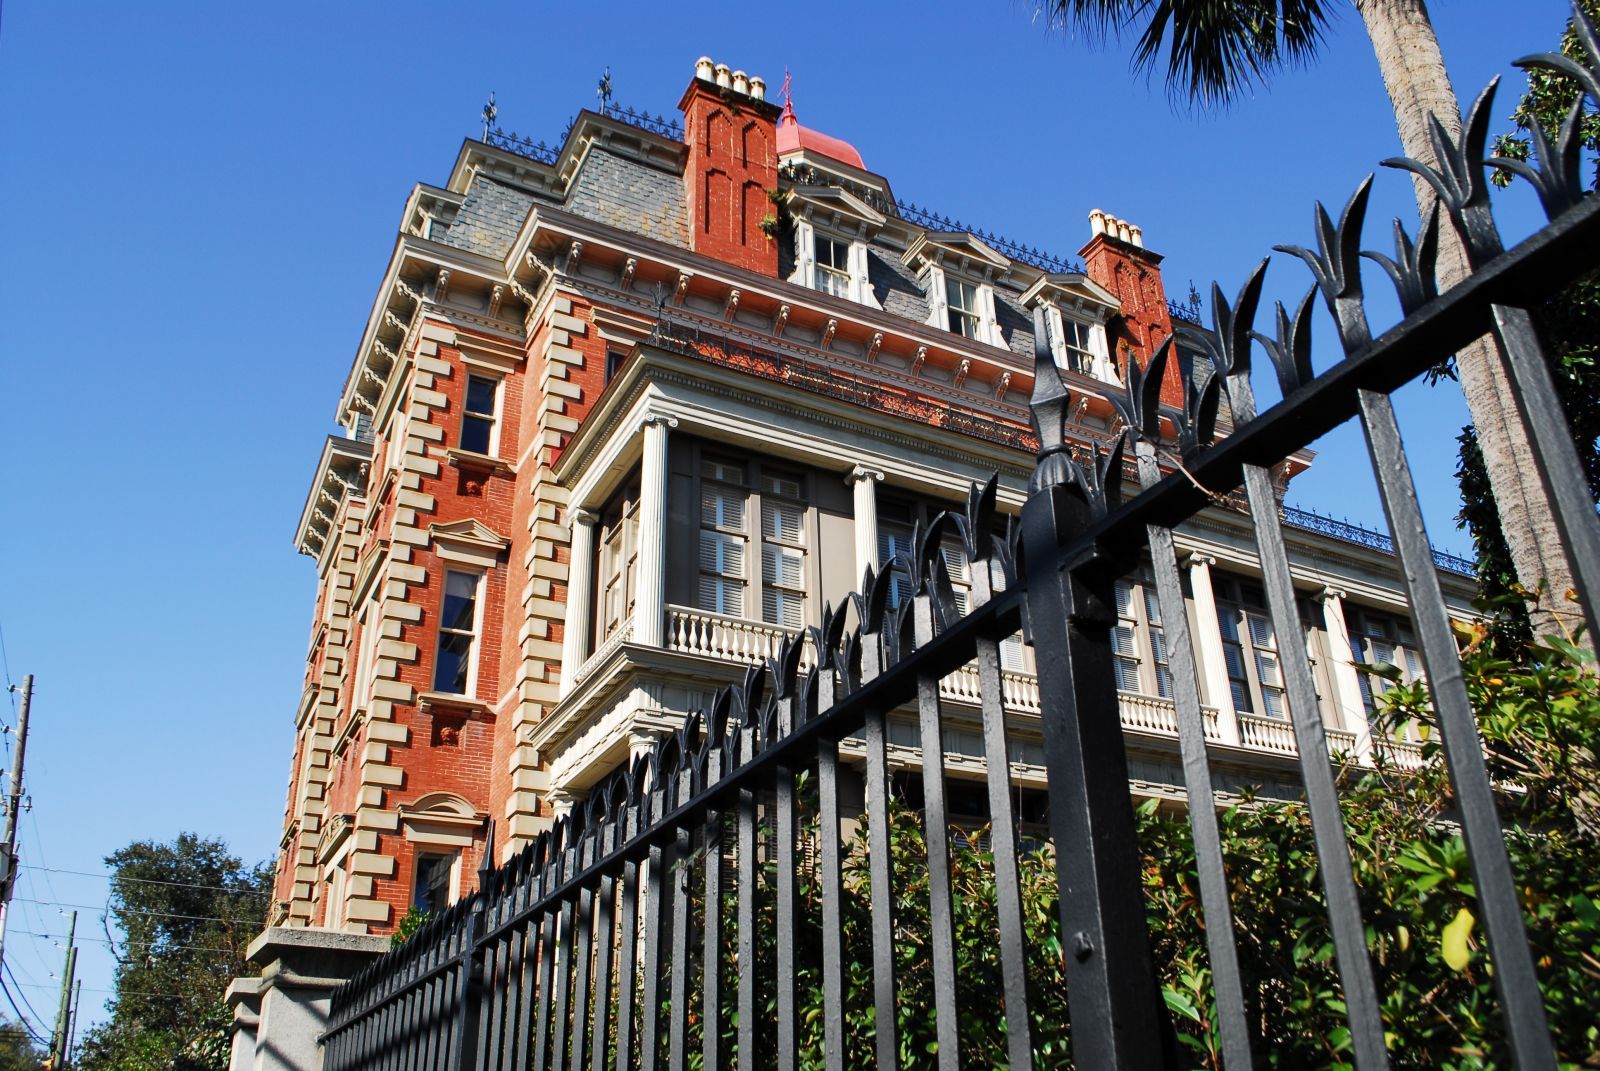 Wentworth Mansion is one of Charleston's most well-known inns, dating back to the late 1800s. (Photo/Andy Owens)